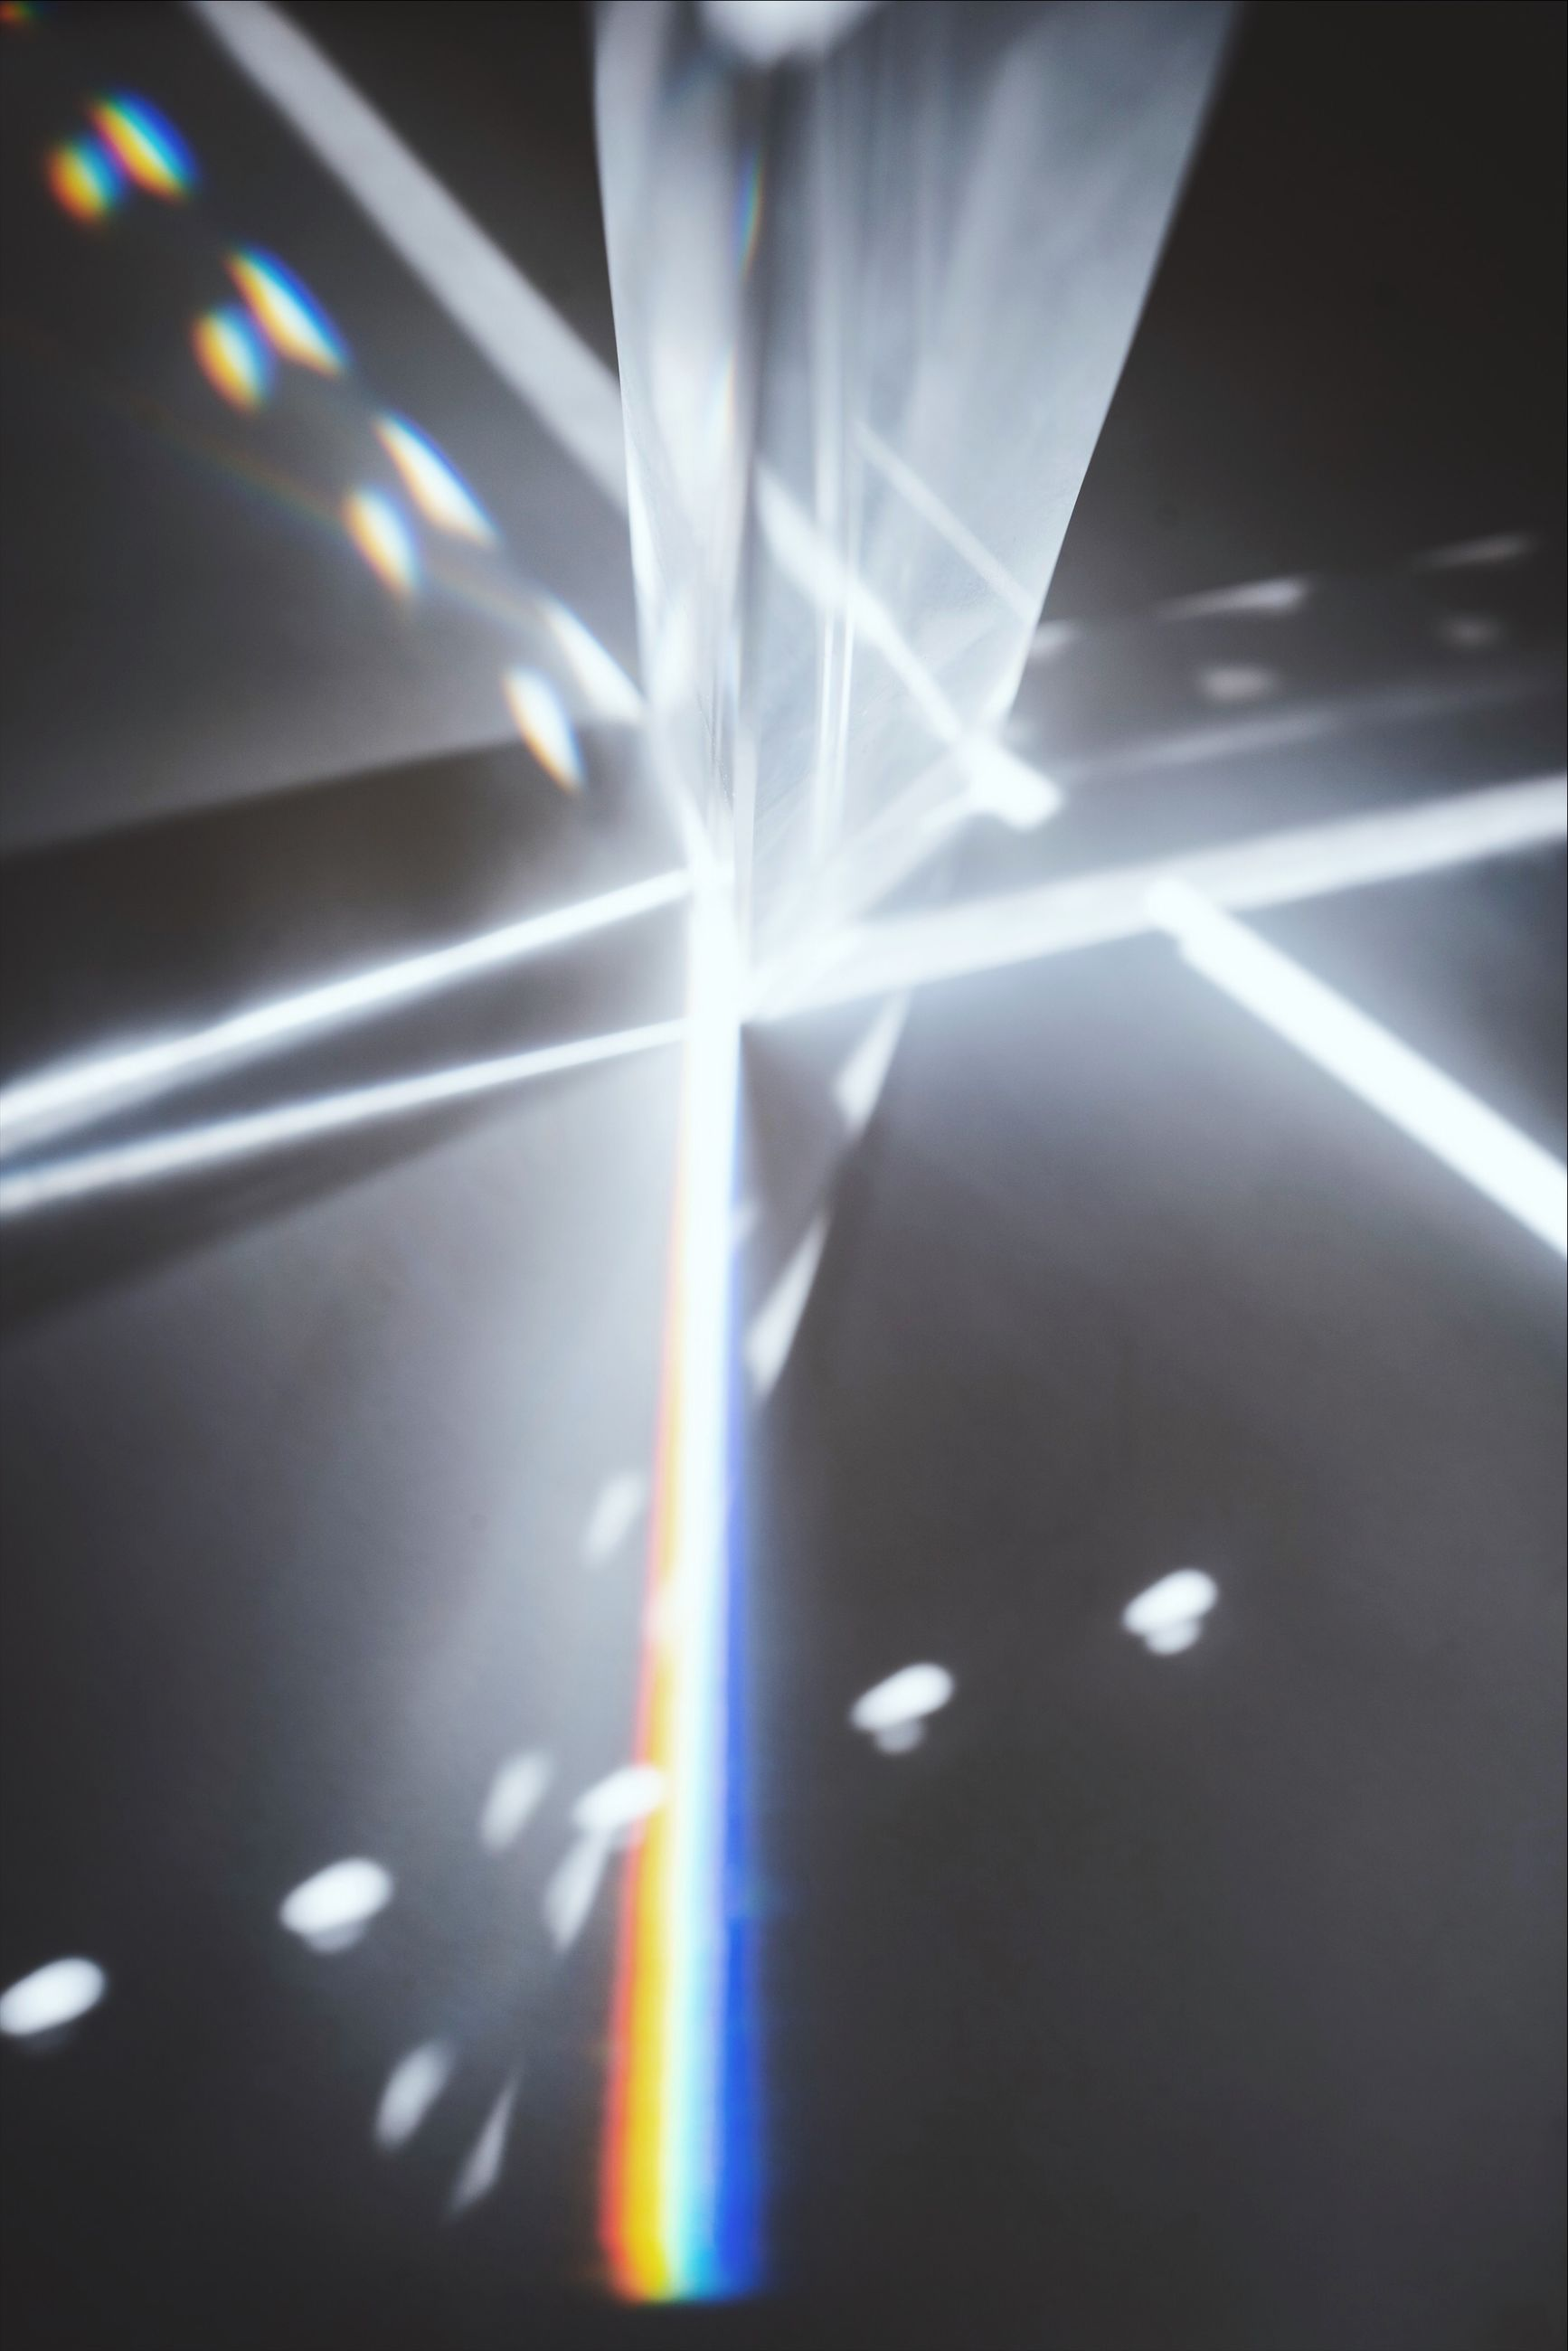 illuminated, indoors, no people, close-up, lighting equipment, glowing, light - natural phenomenon, pattern, night, lens flare, full frame, long exposure, nature, motion, backgrounds, glass - material, light beam, fluorescent light, transparent, ceiling